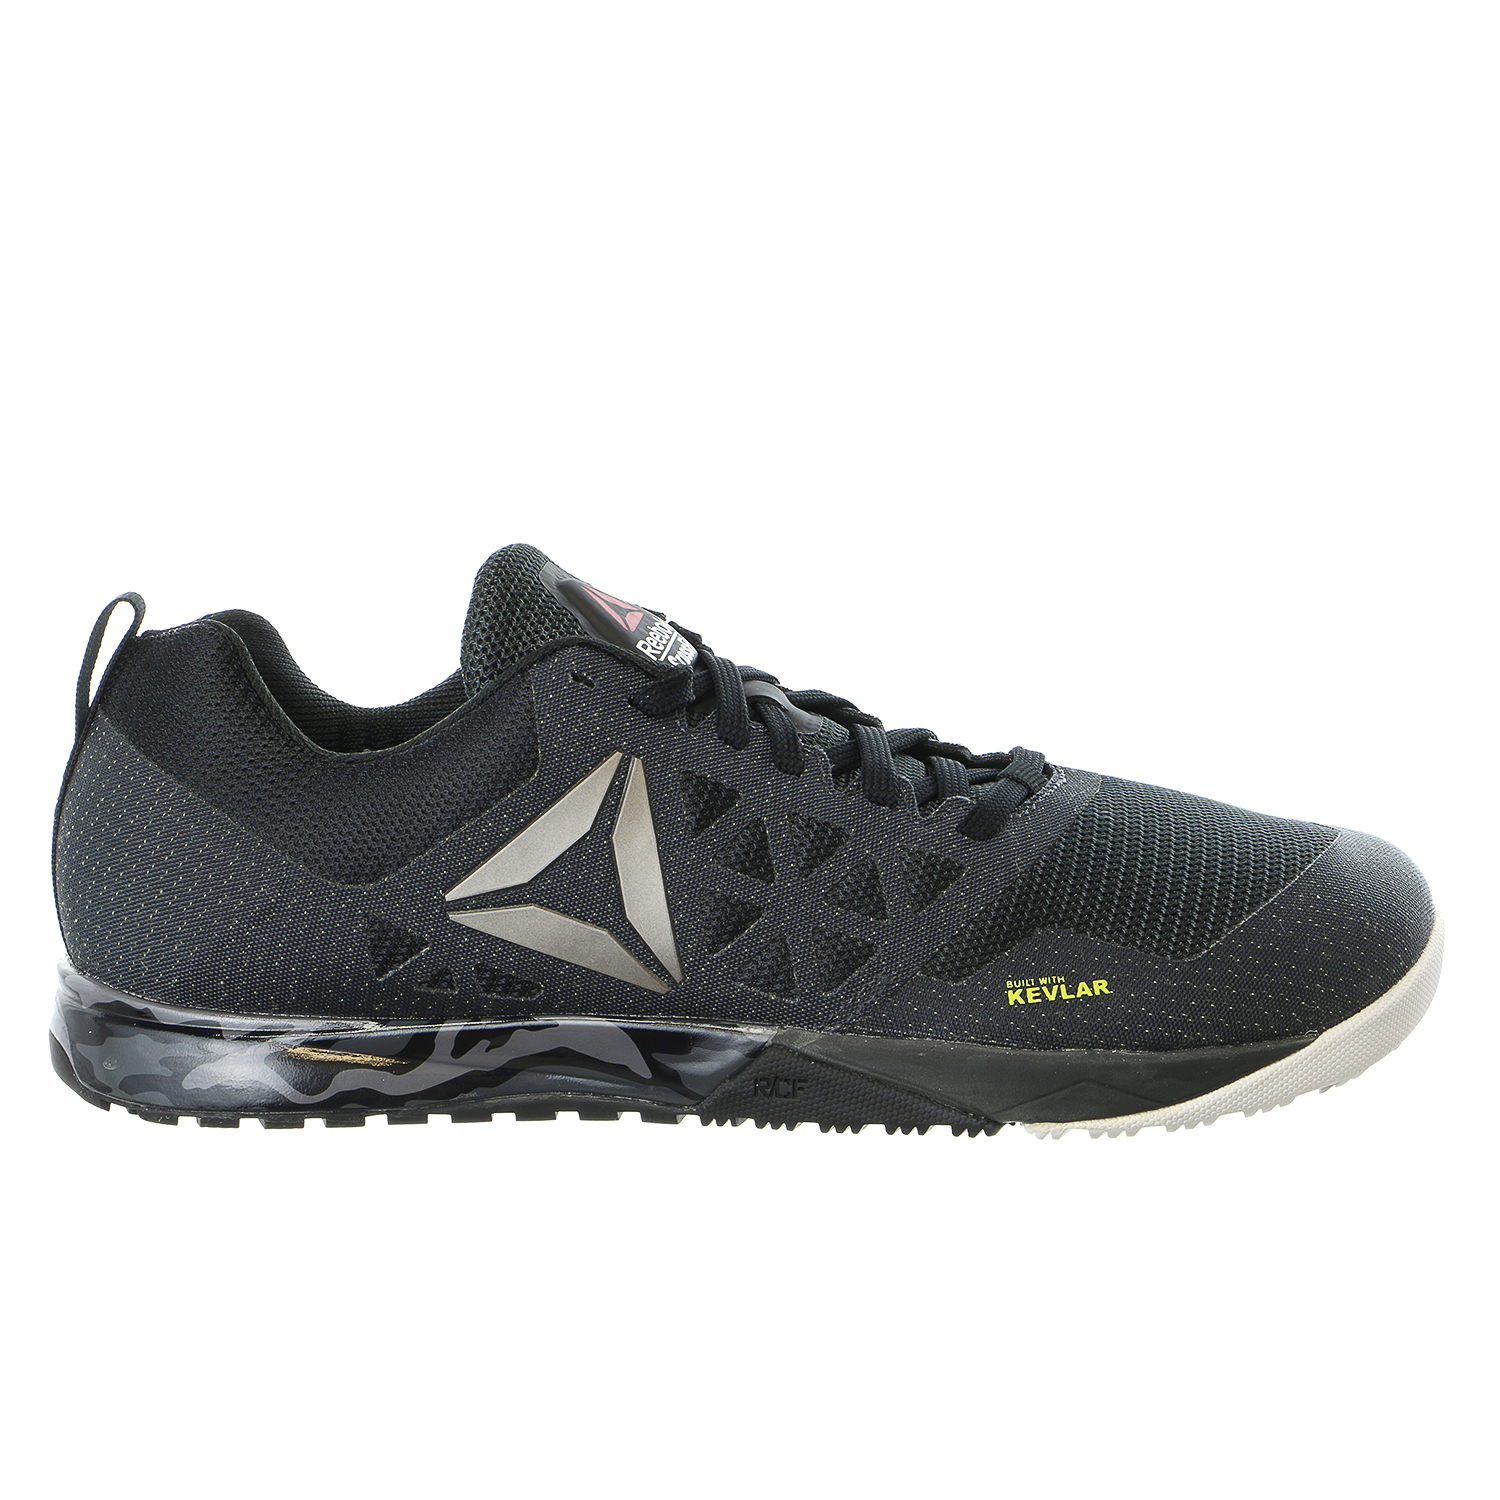 Reebok Crossfit Nano 6.0 Cross-Training Sneaker Shoe - Mens - Walmart.com